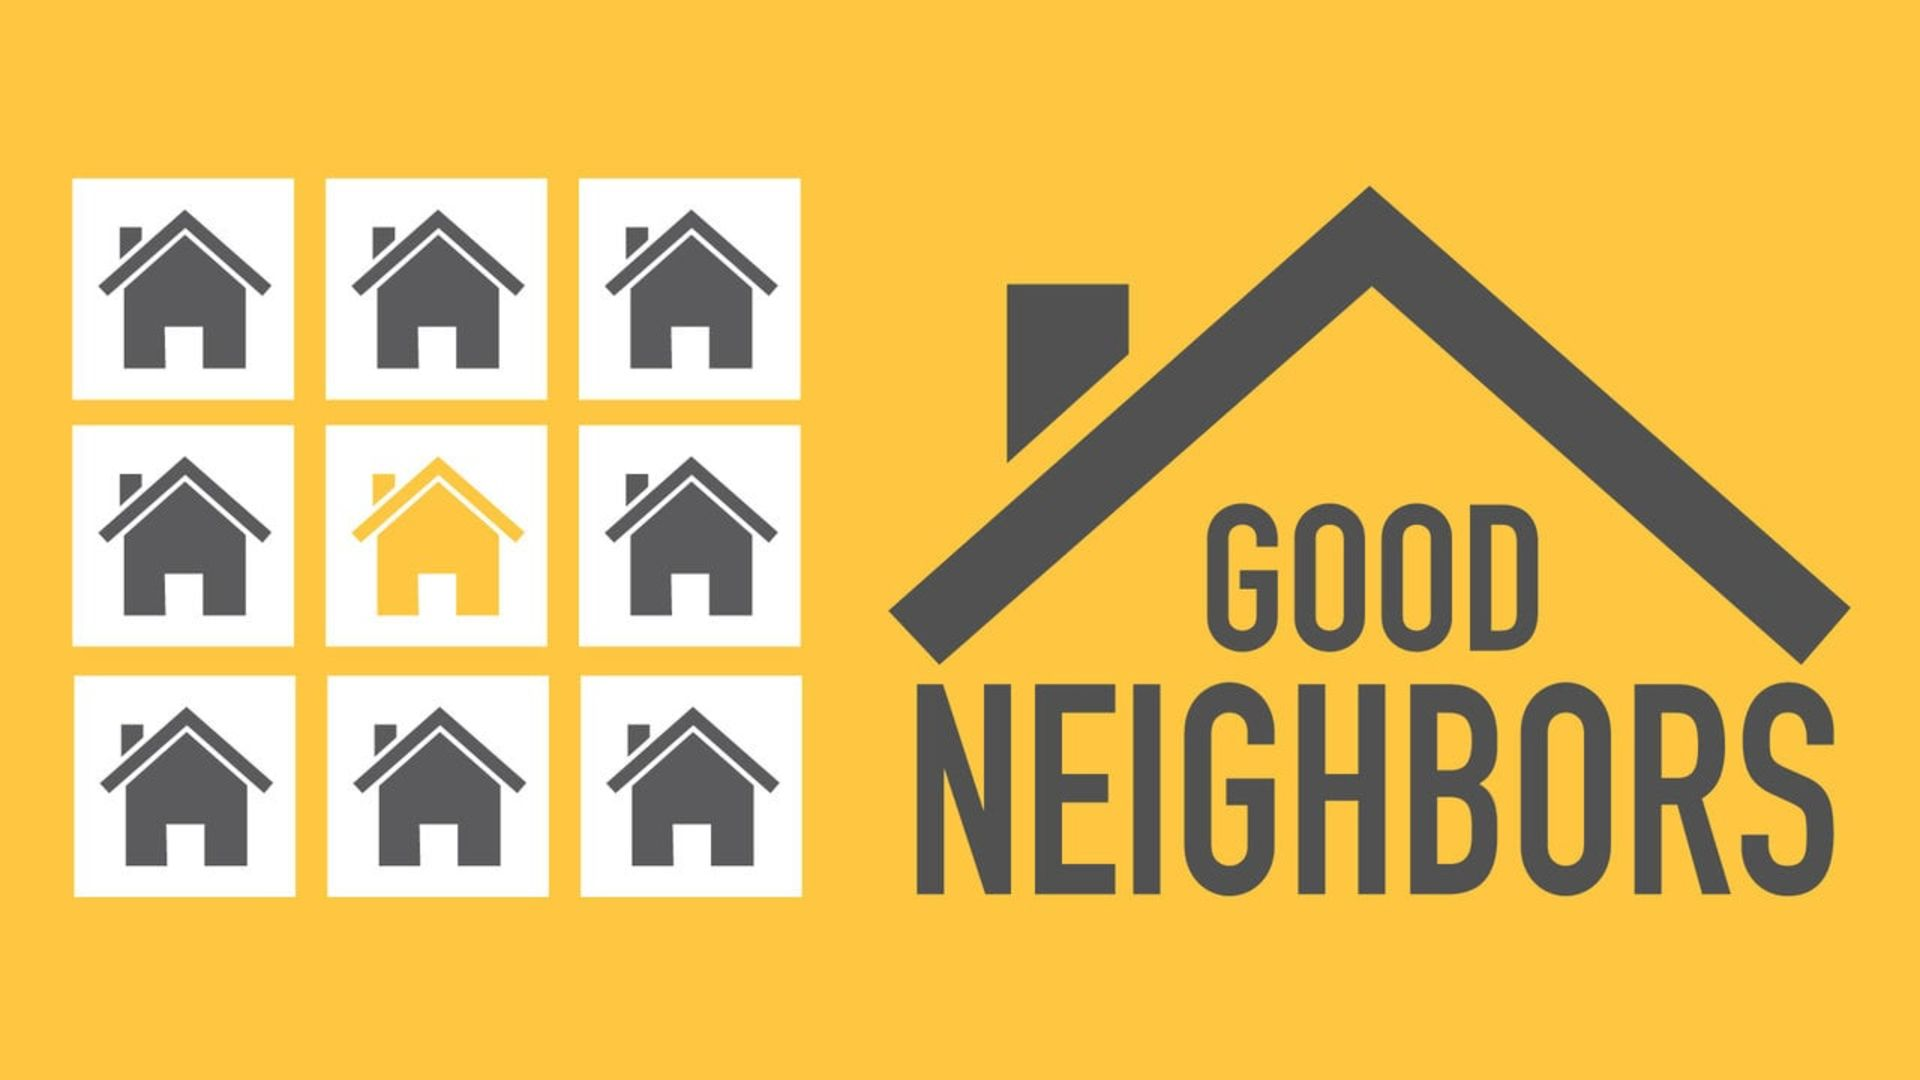 GOOD NEIGHBORS – IMPORTANT TO HAVE ONE AND TO BE ONE!